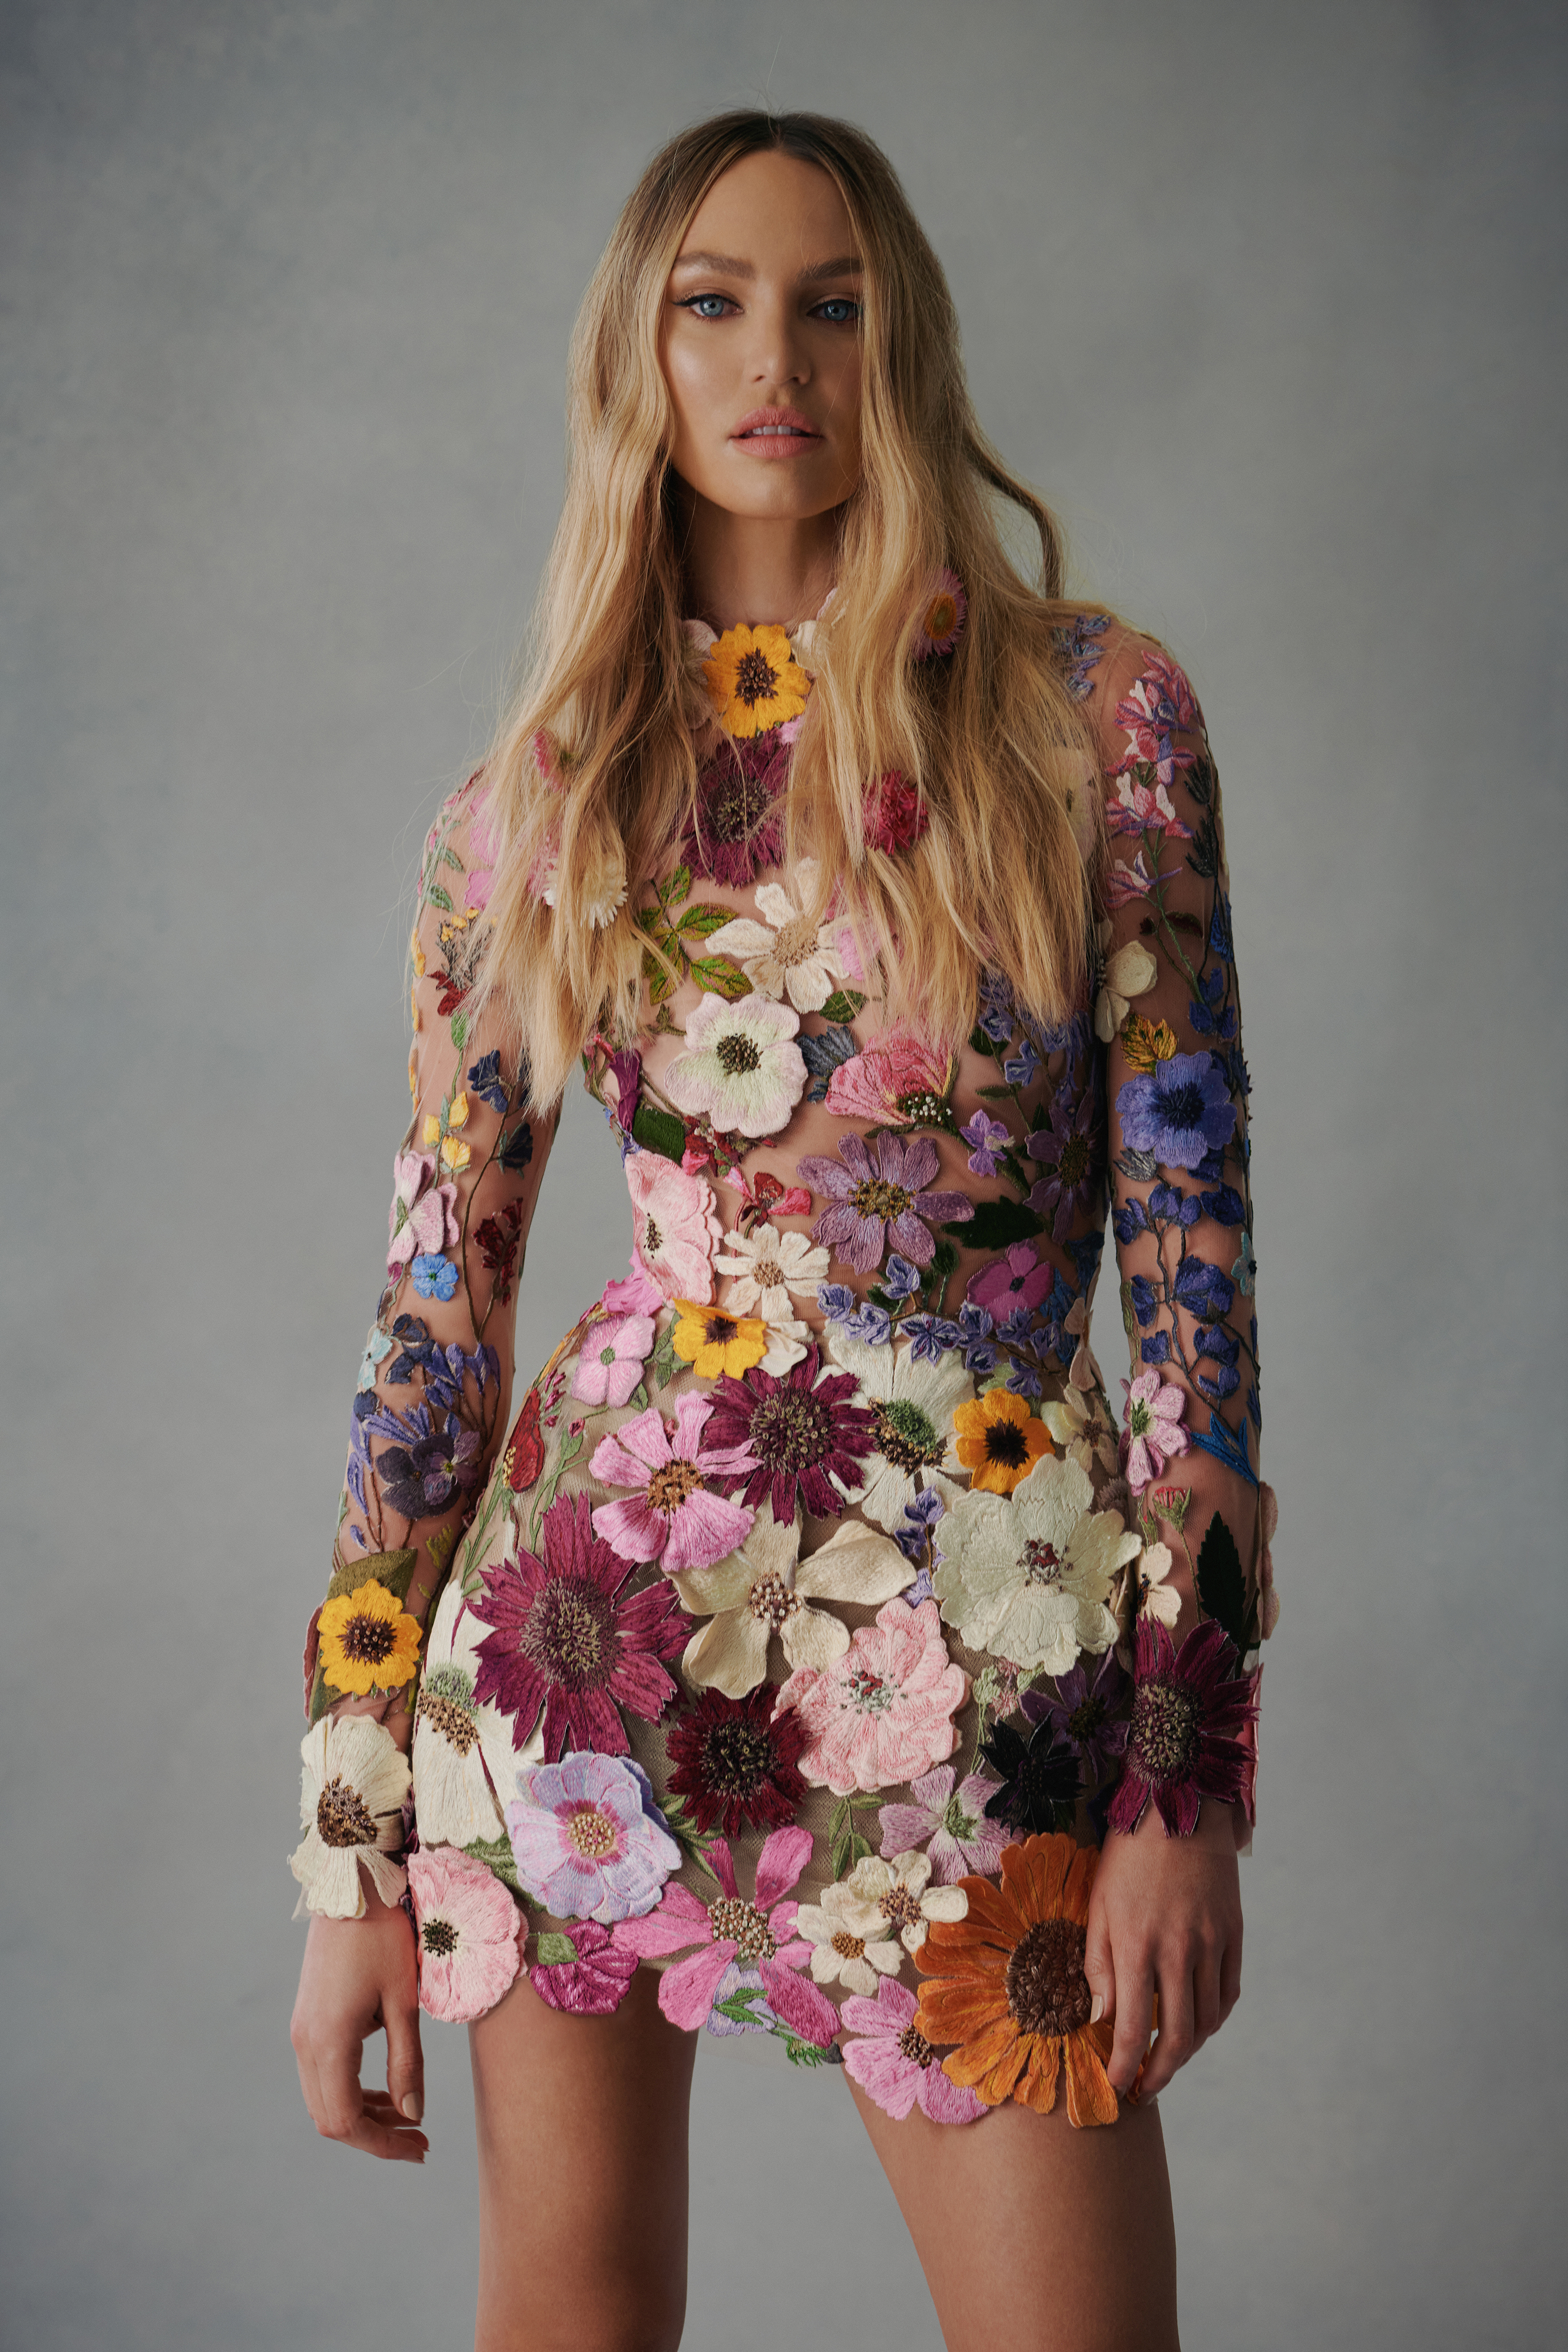 Candice Swanepoel is Ready for Spring!.jpg